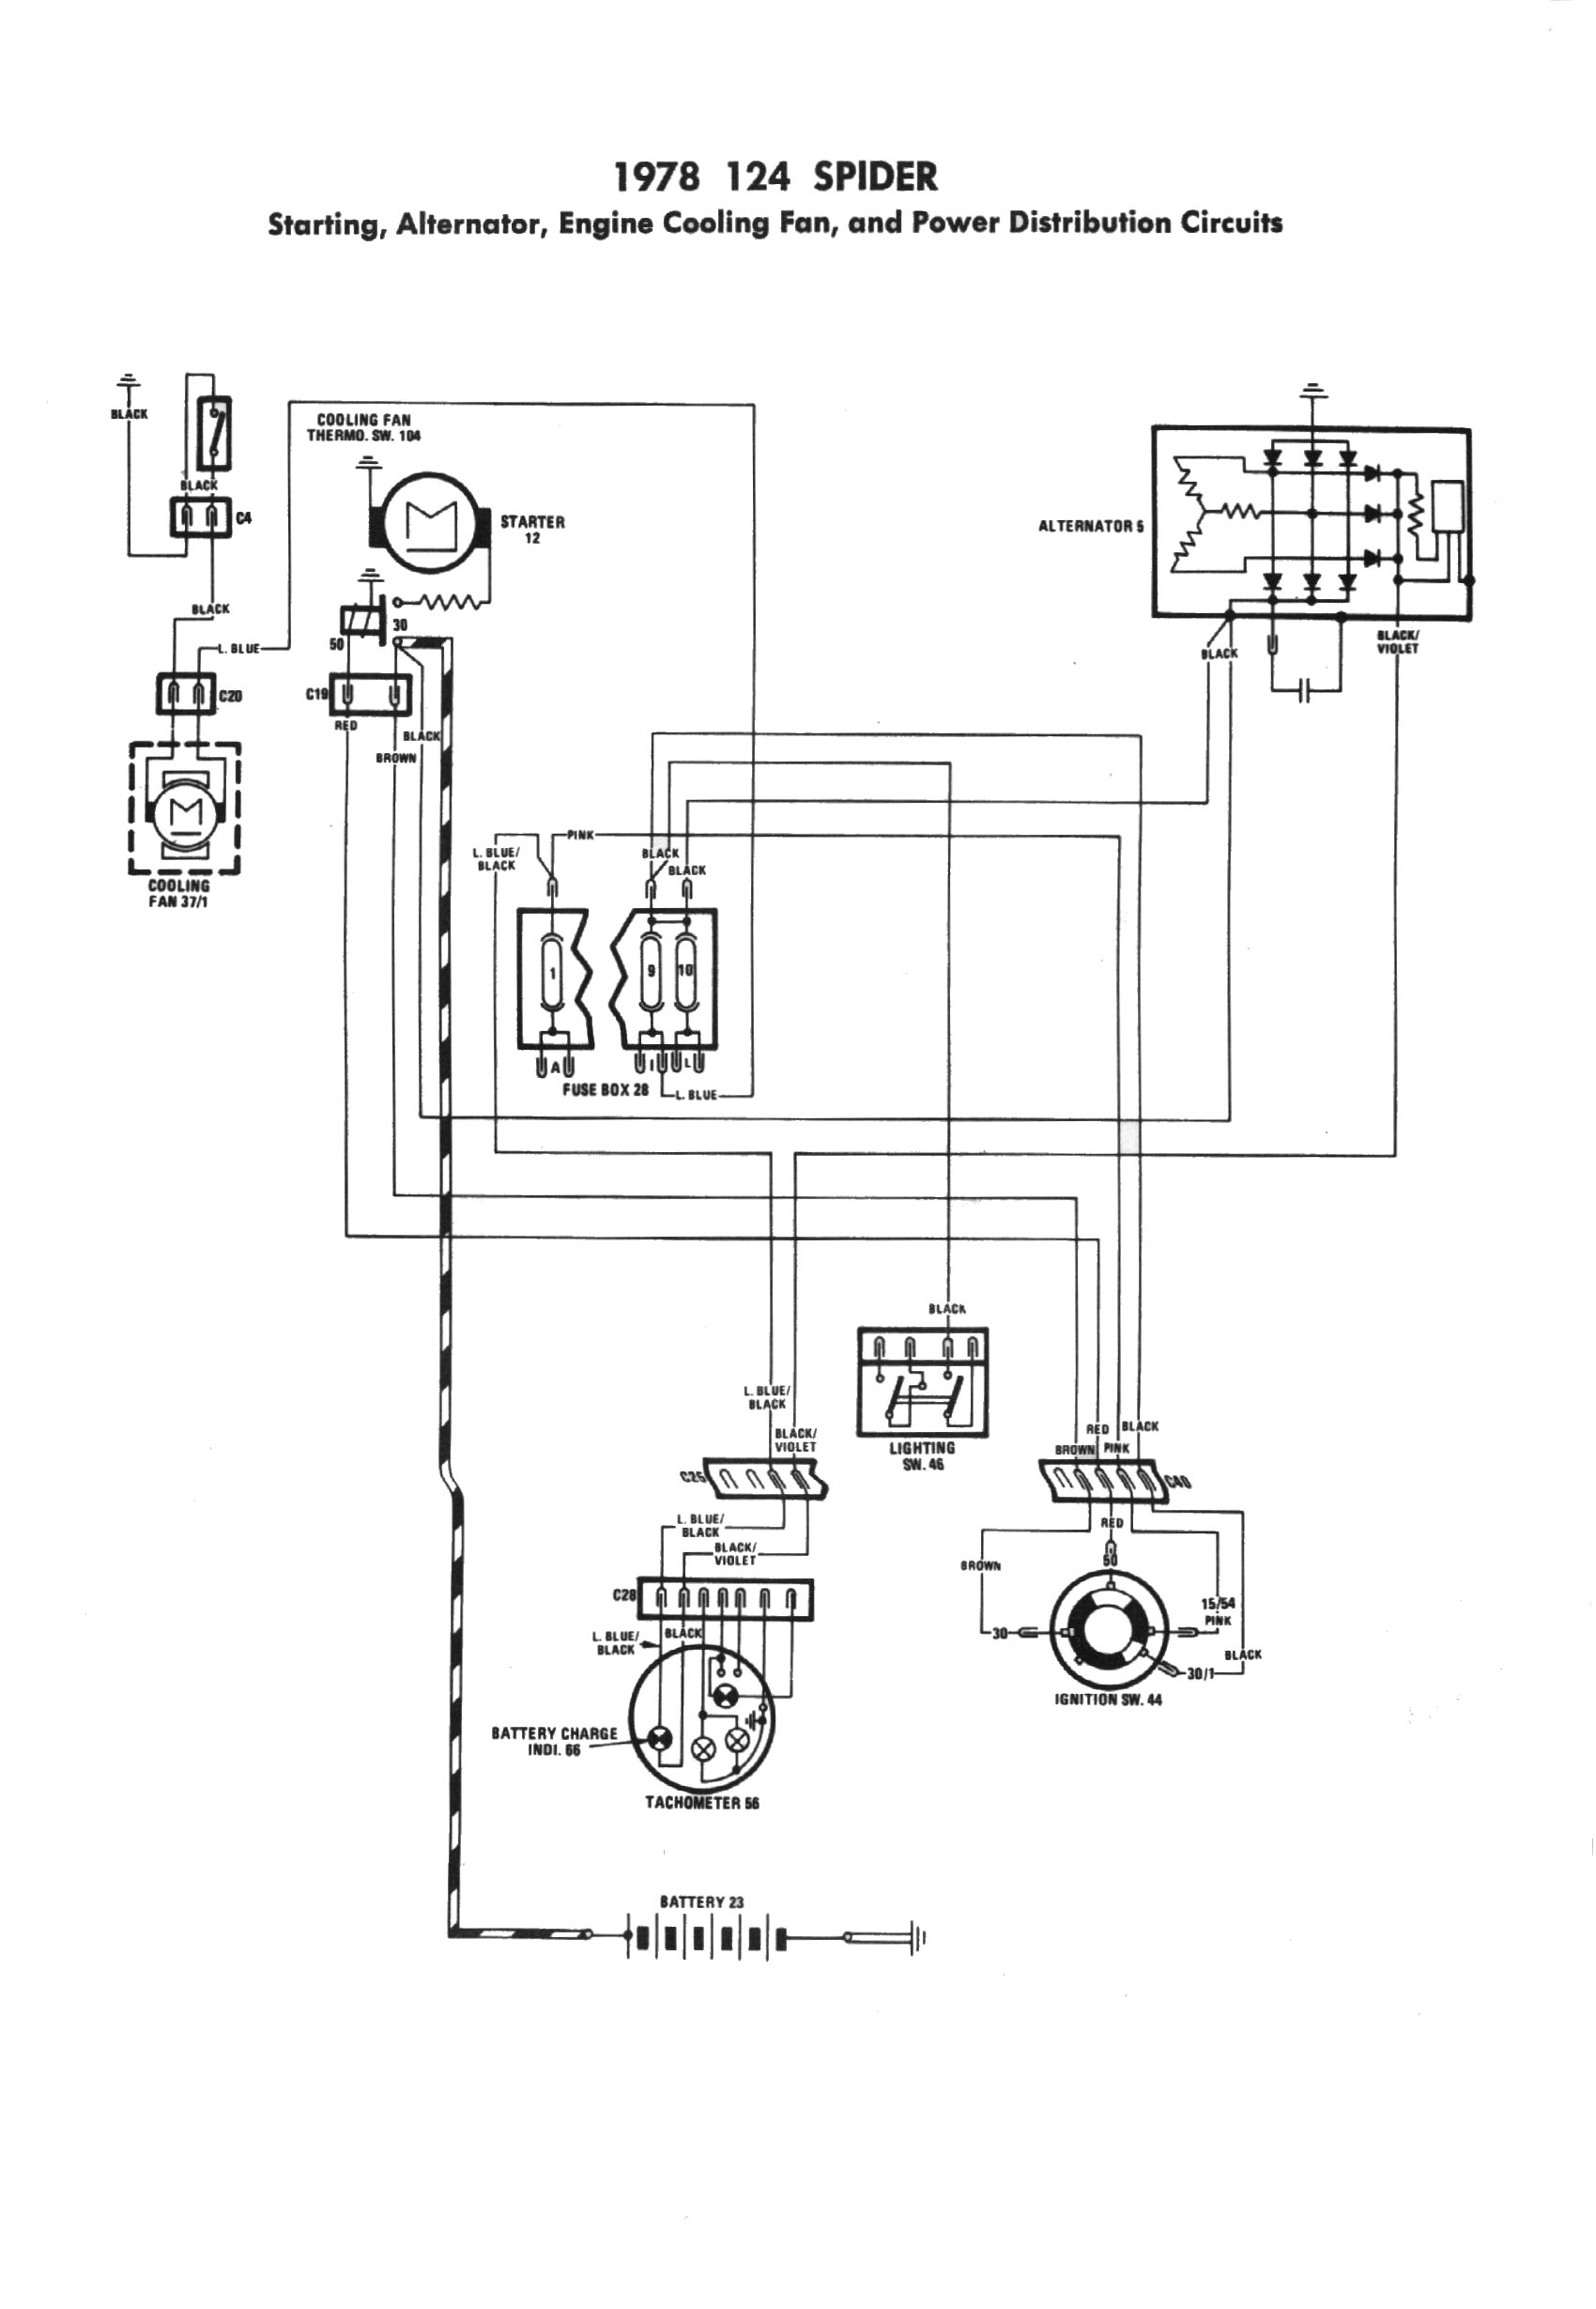 Romeo Spider Wiring Diagram On Honda Ignition Switch Basic Guide Alfa Start 83 Fuse Box Get Free Image About Go Devil Exmark